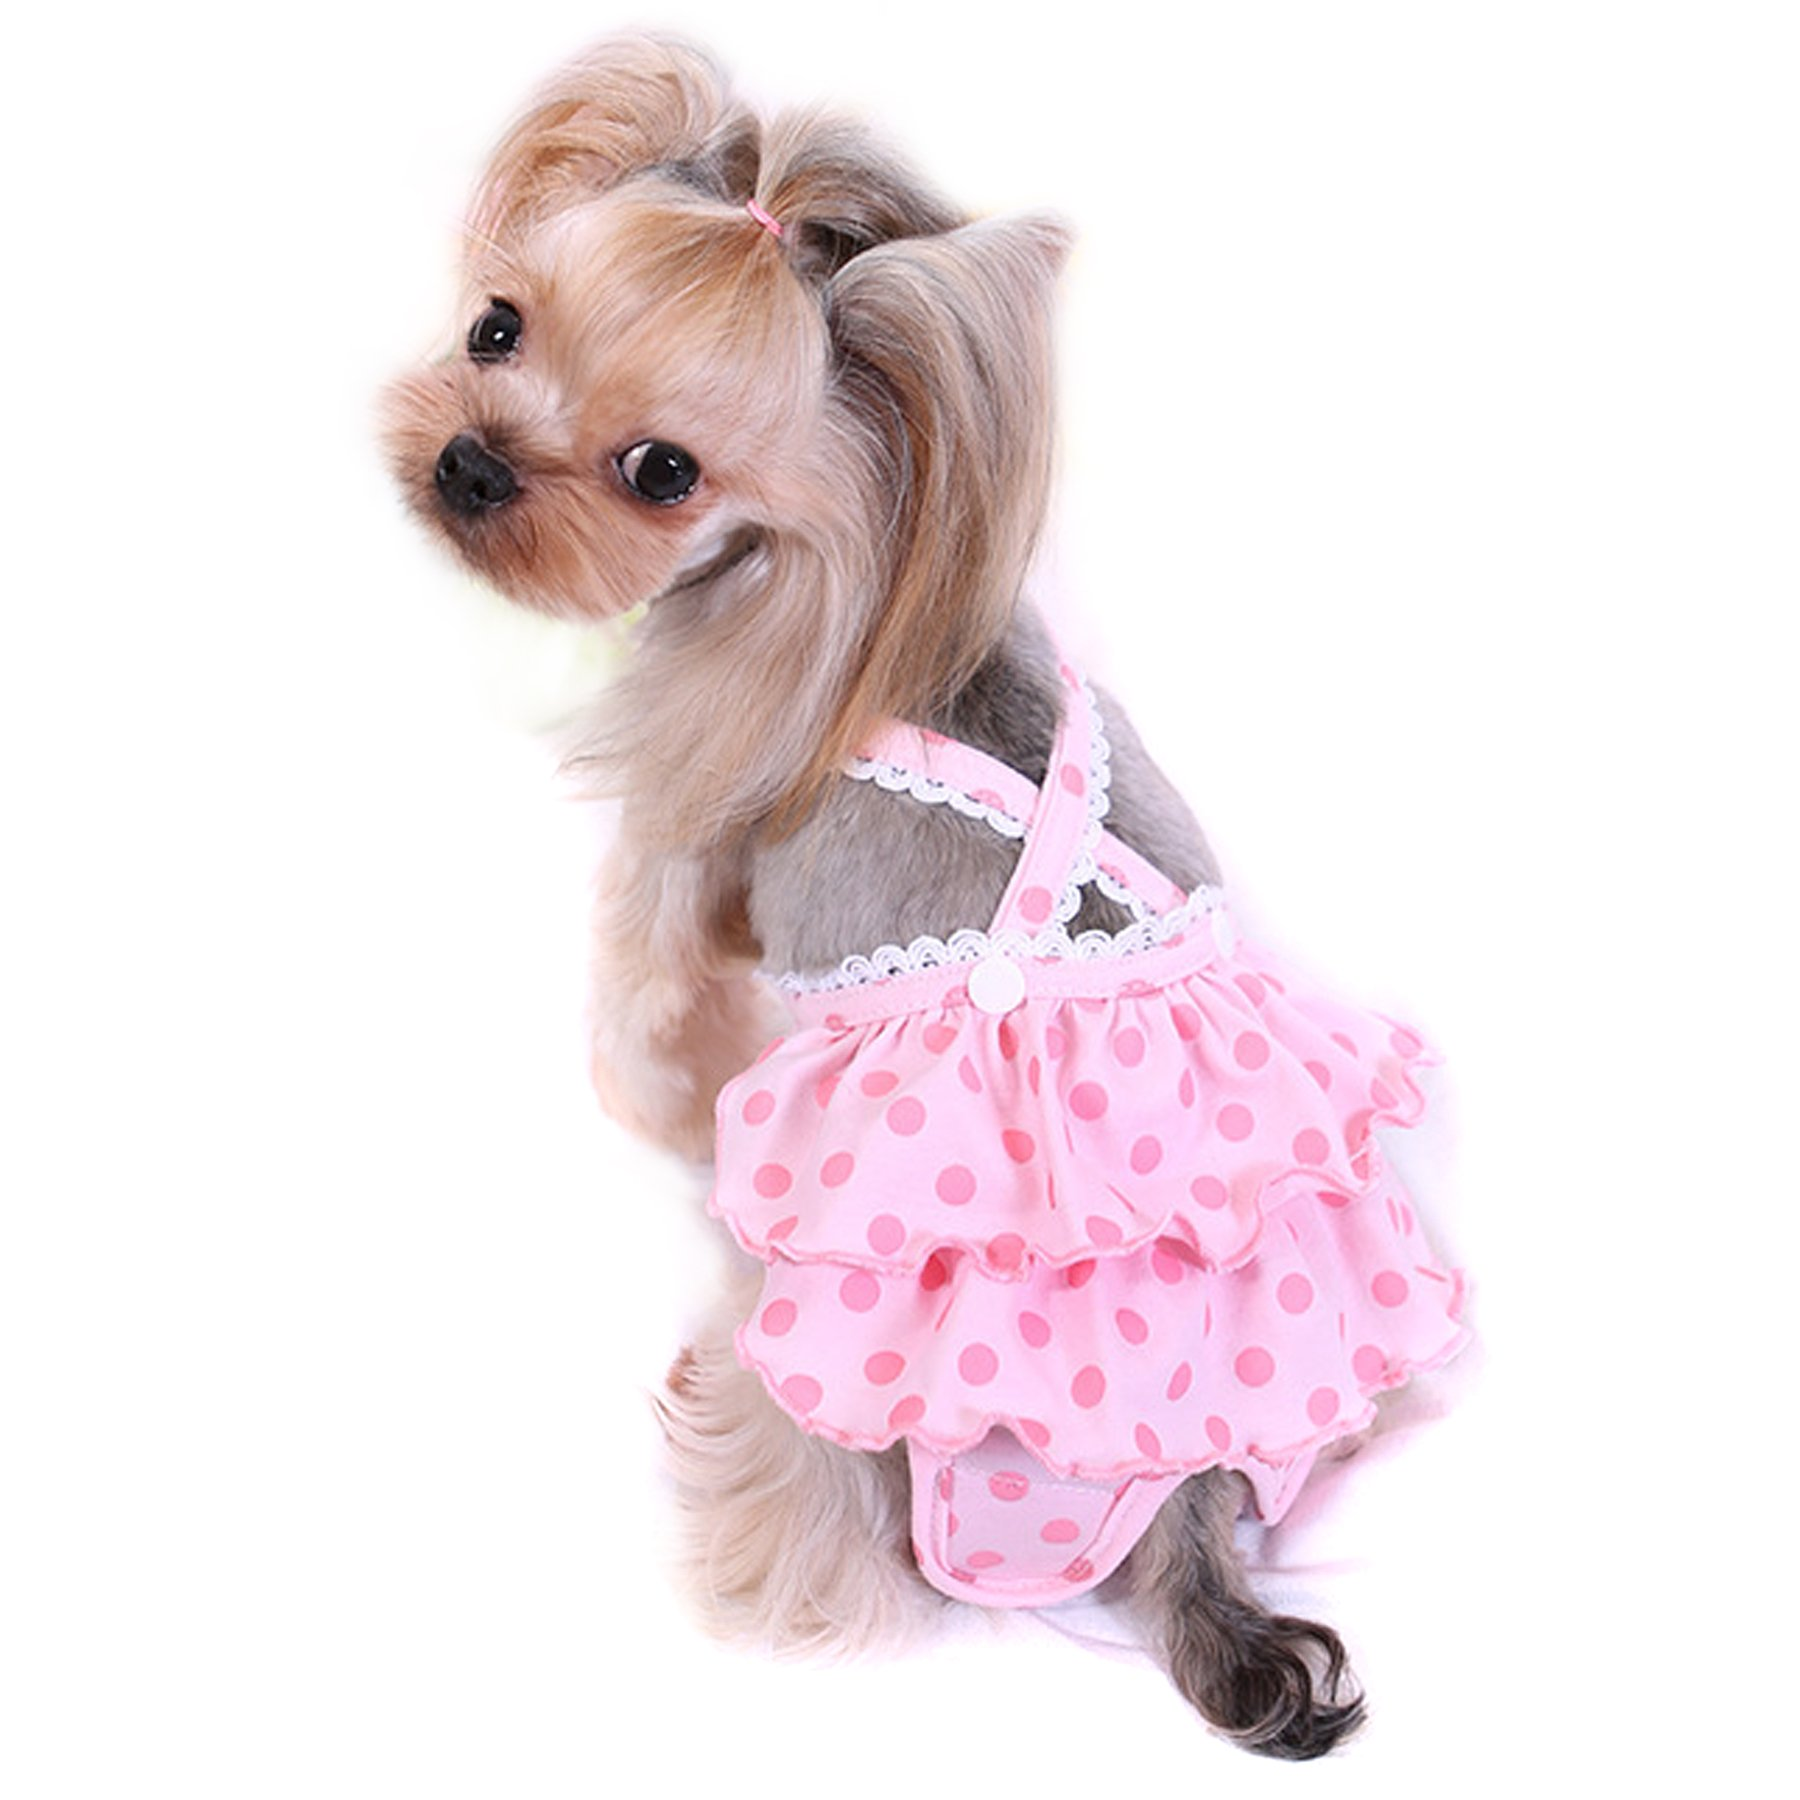 Alfie Pet by Petoga Couture - Frona Diaper Dog Sanitary Pantie with Suspender for Girl Dogs - Color: Pink, Size: Small